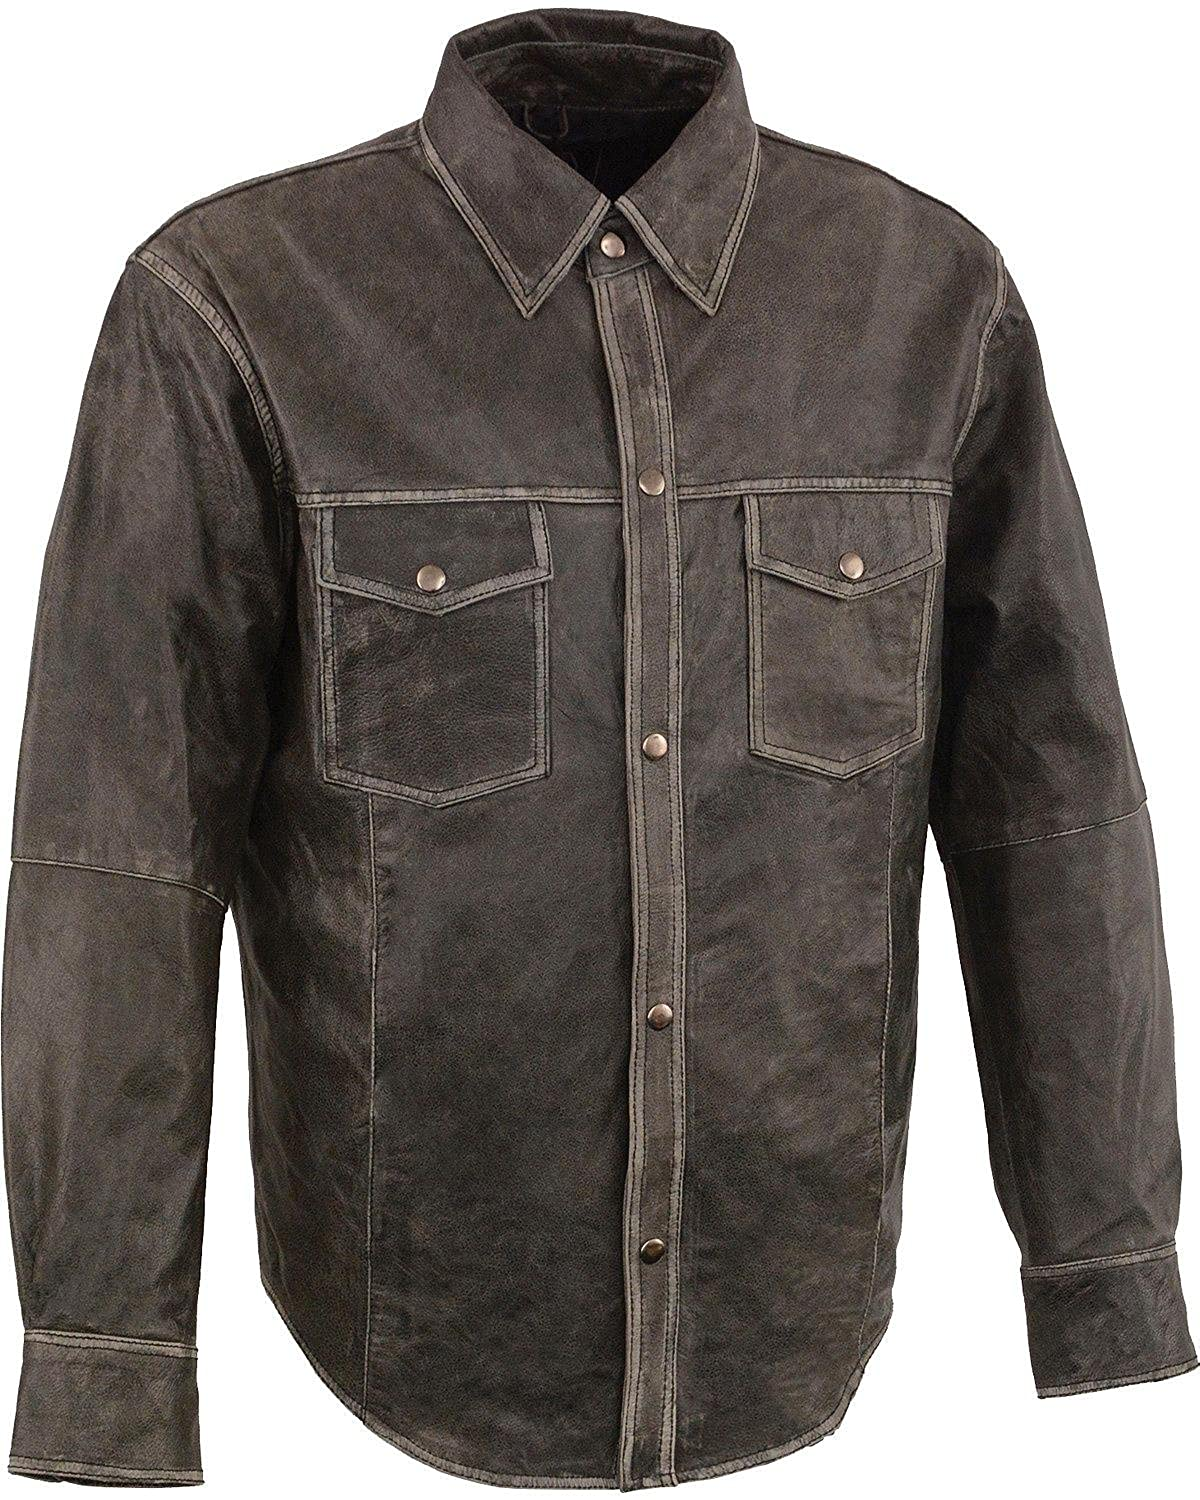 Milwaukee Leather Mens Grey Lightweight Shirt Big and Tall Mlm1605-Distressed Gry-4X